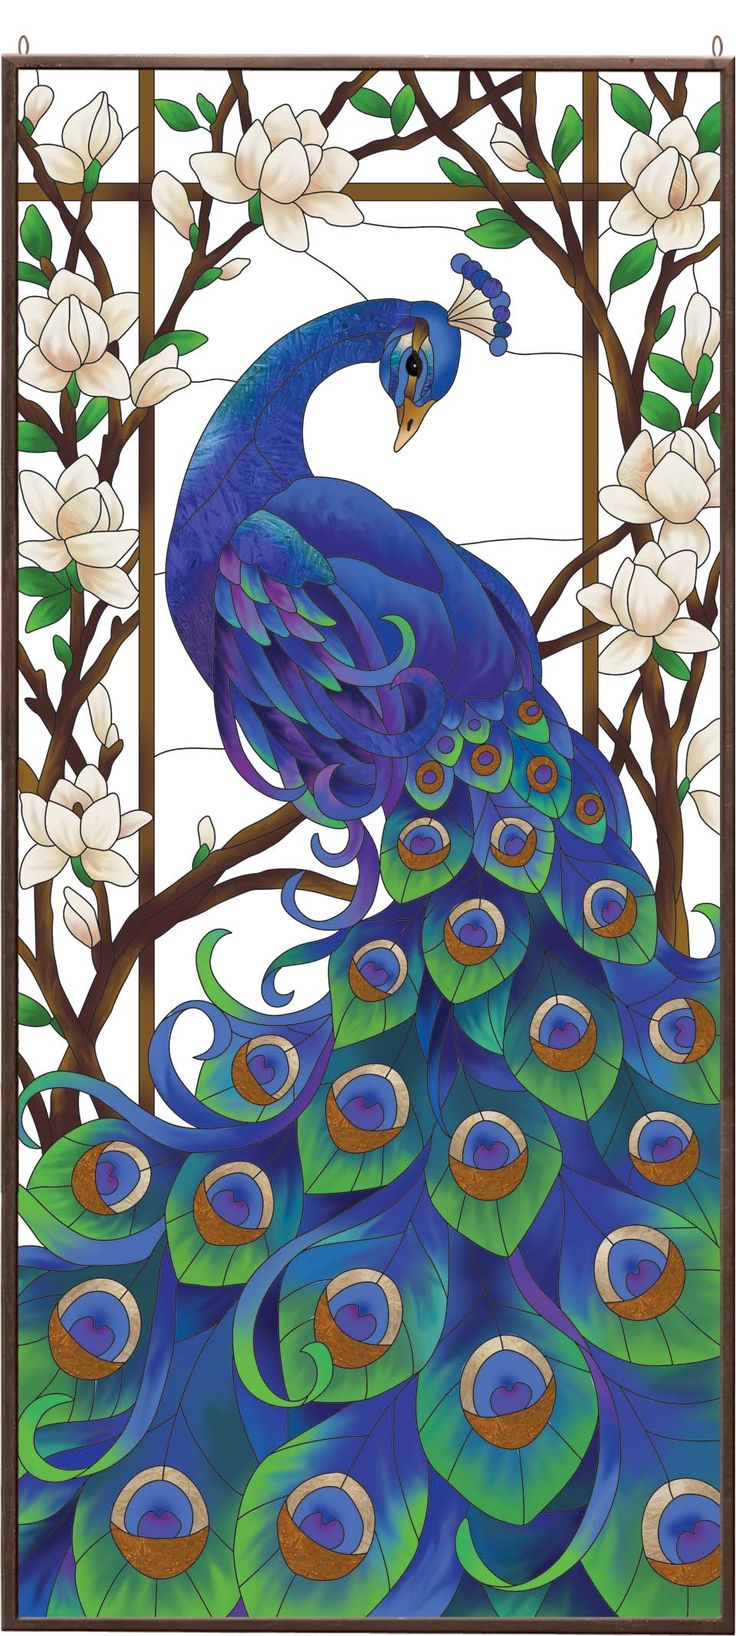 Peacock Stained Glass Art Panel.